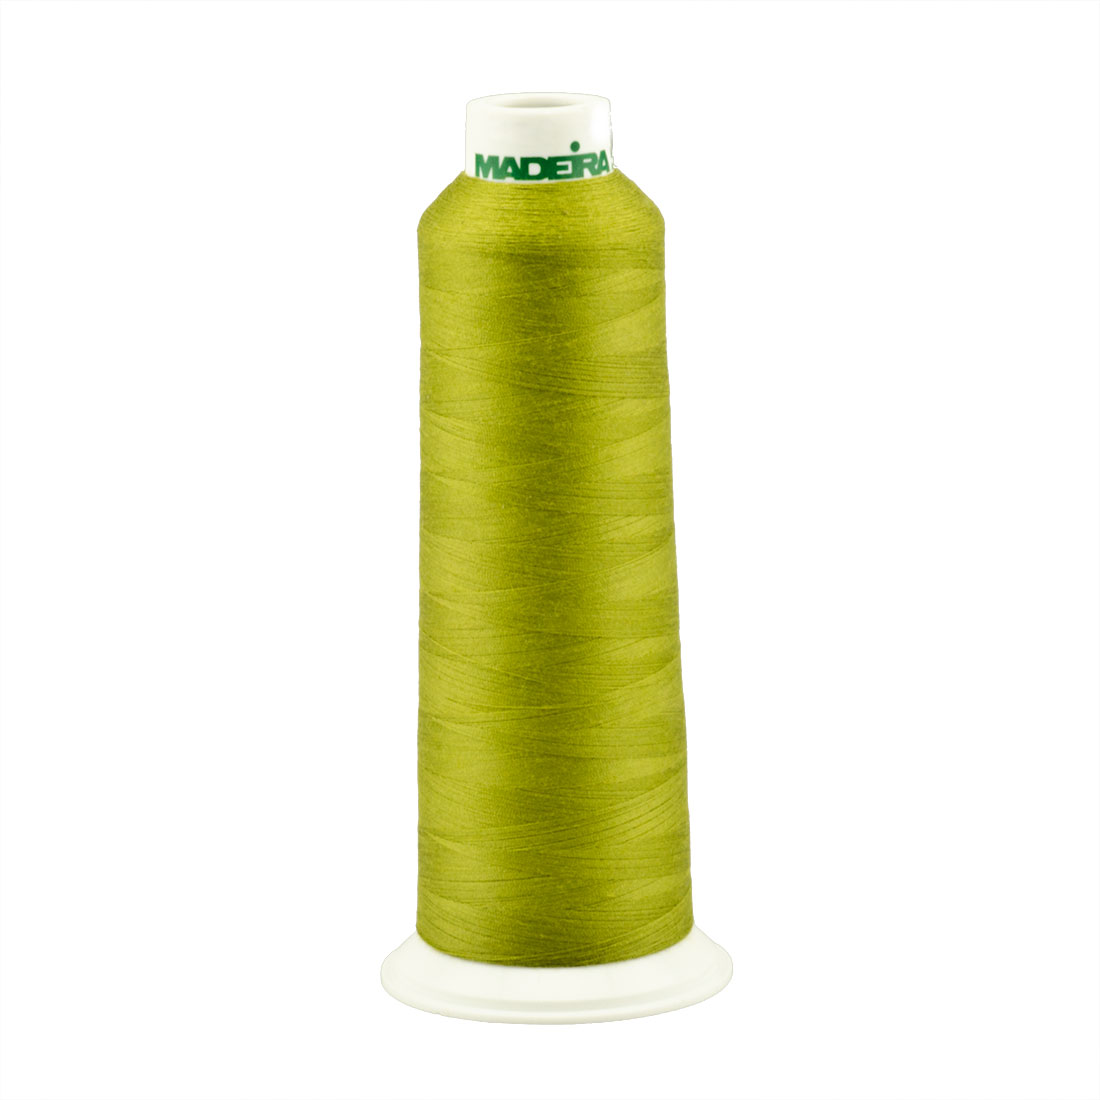 Madeira Olive Drab Aeroquilt 3000 Yard Cone Poly Quilting Thread